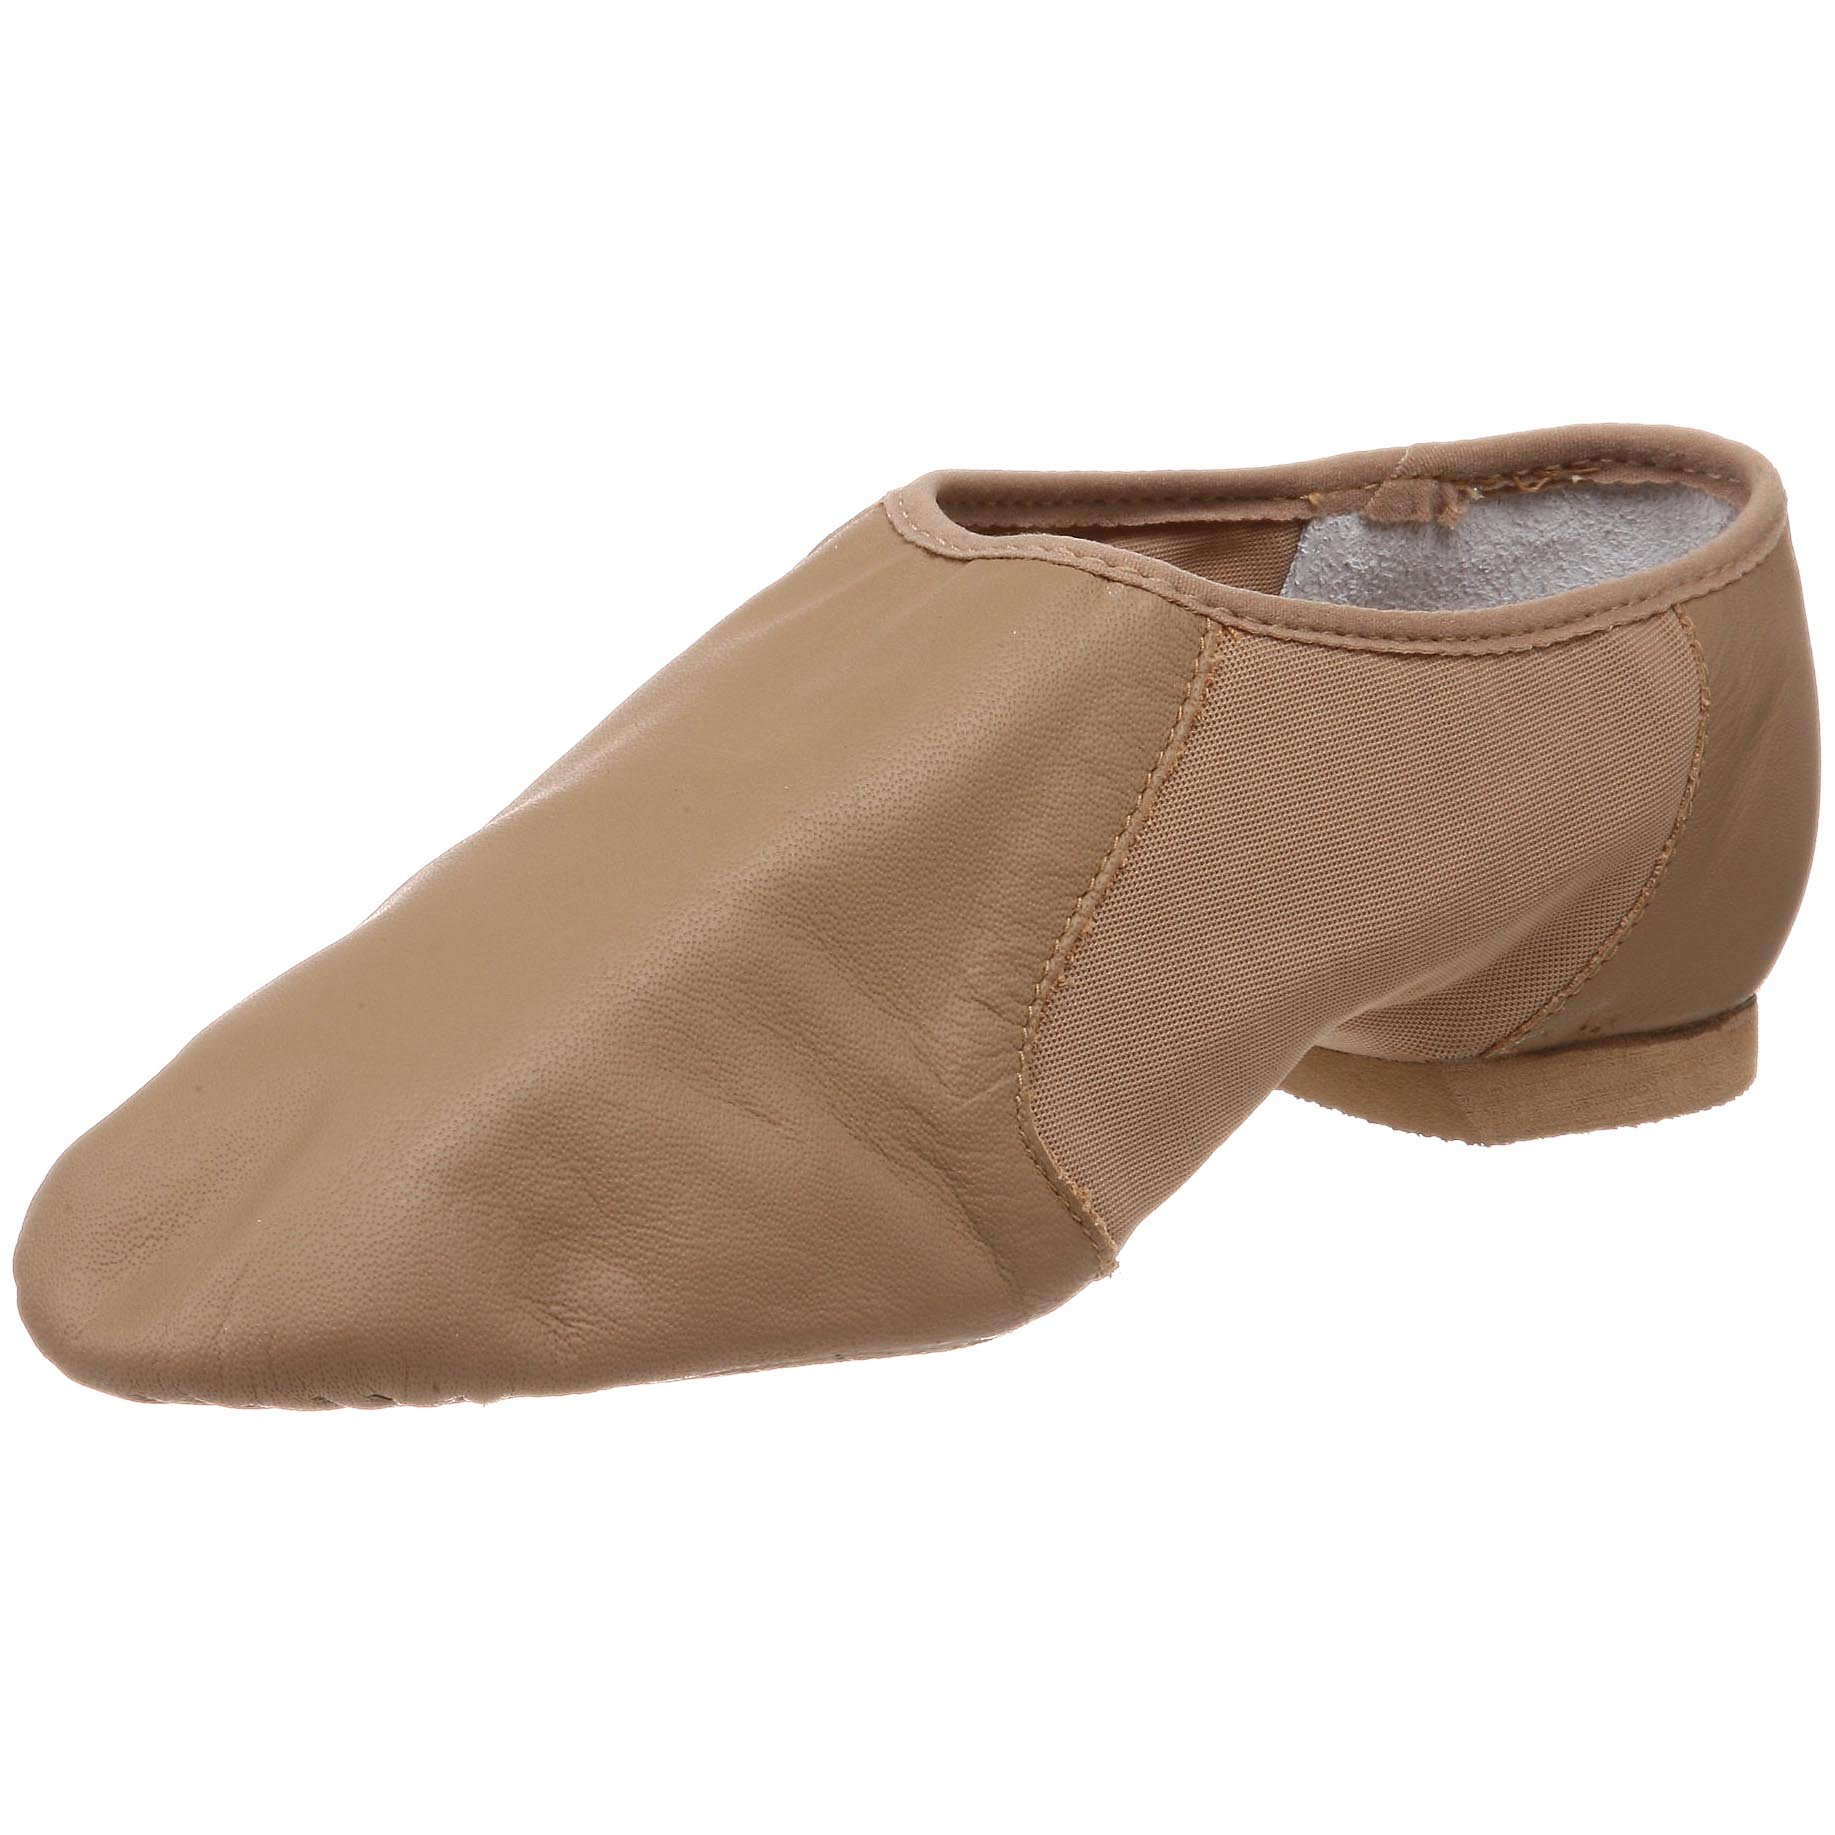 Bloch Women's Neo Flex Slip On Jazz Shoe